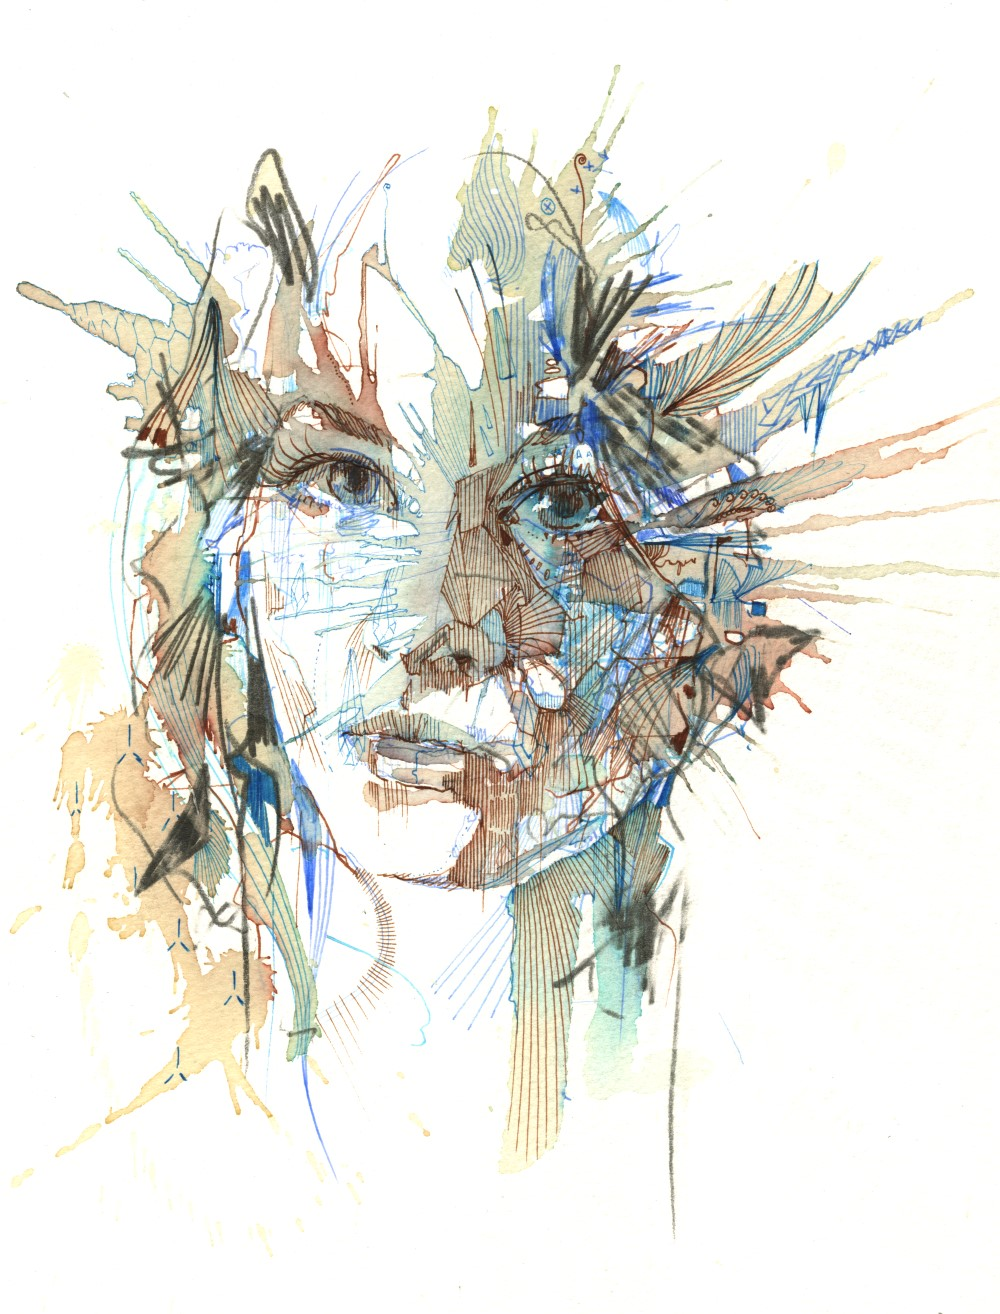 Stepping Back by Carne Griffiths